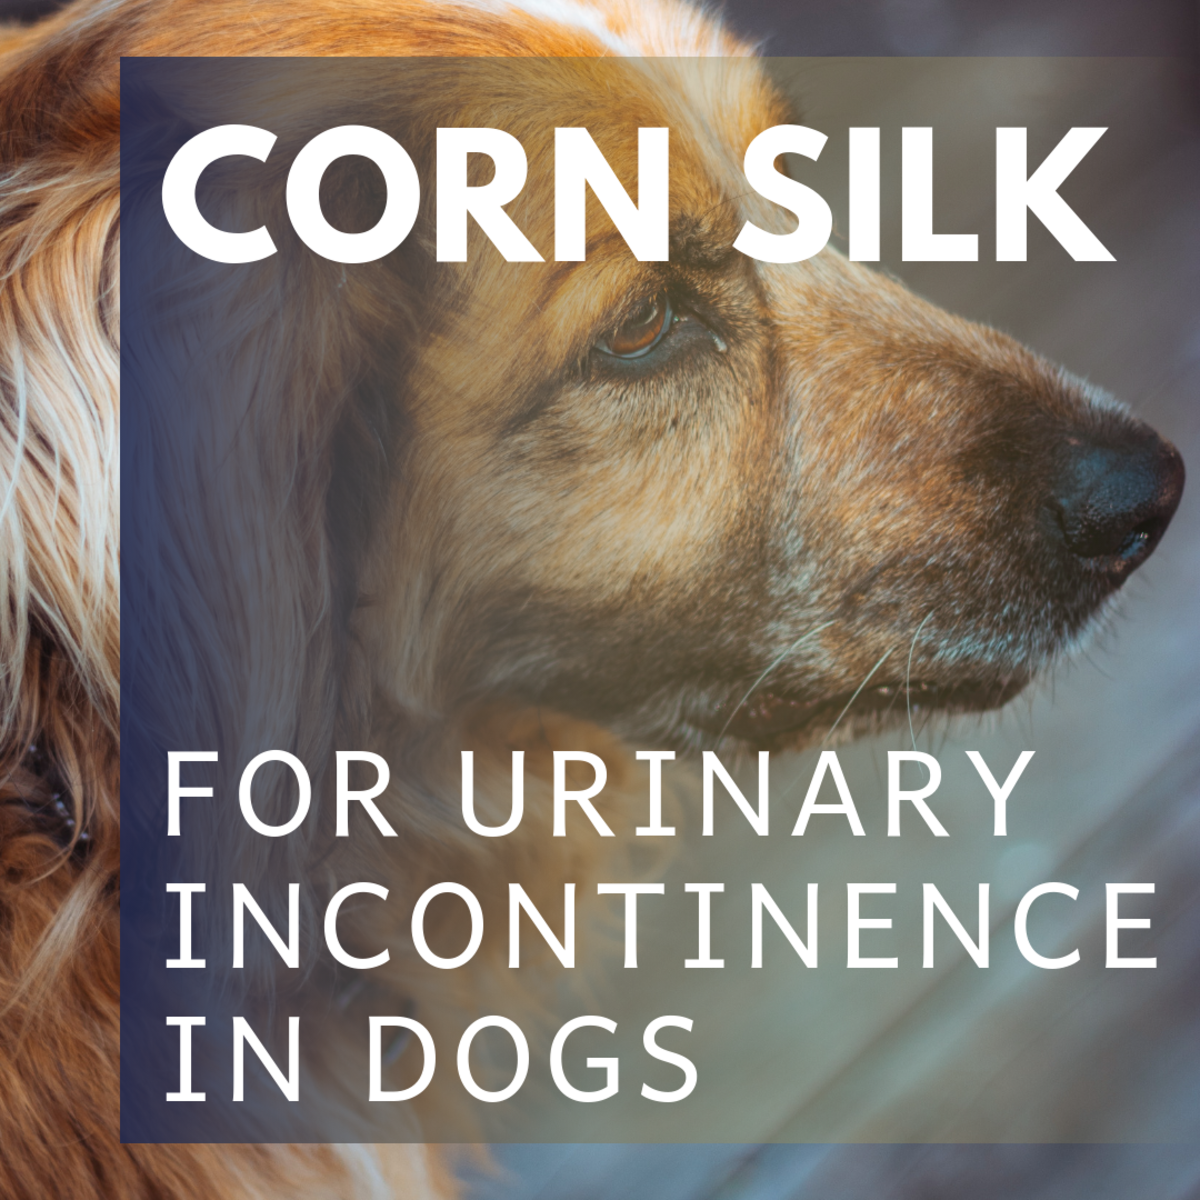 The Treatment of Canine Urinary Incontinence With Corn Silk